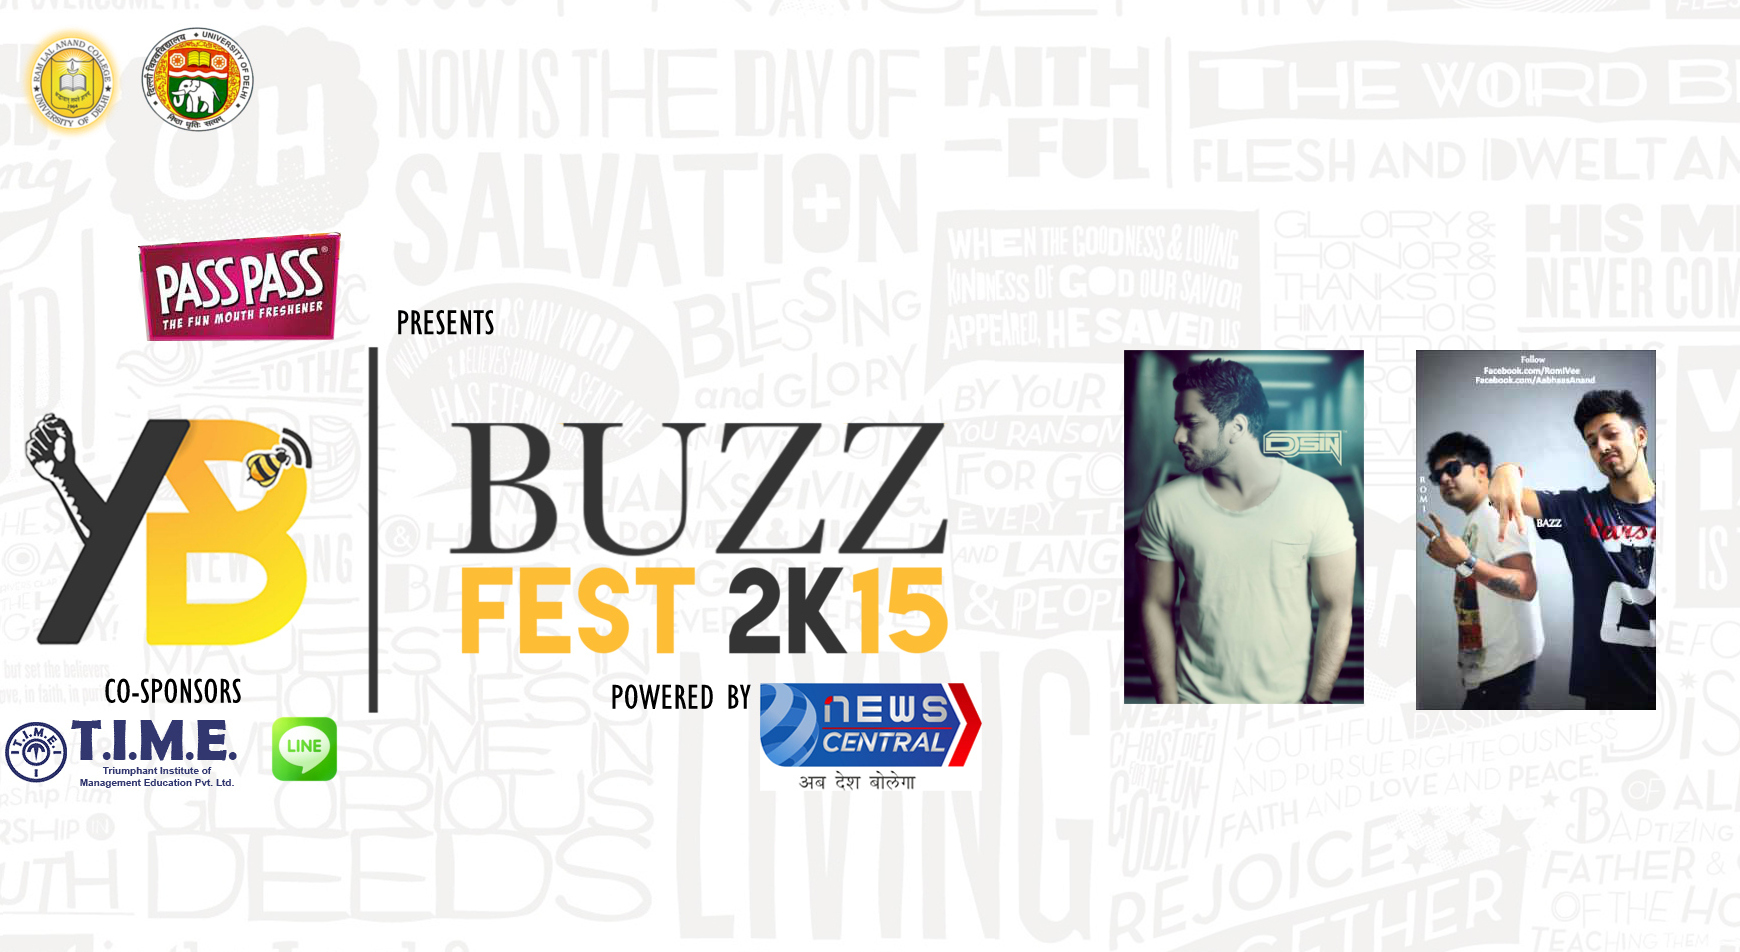 Tonight At Buzz Fest 2k15